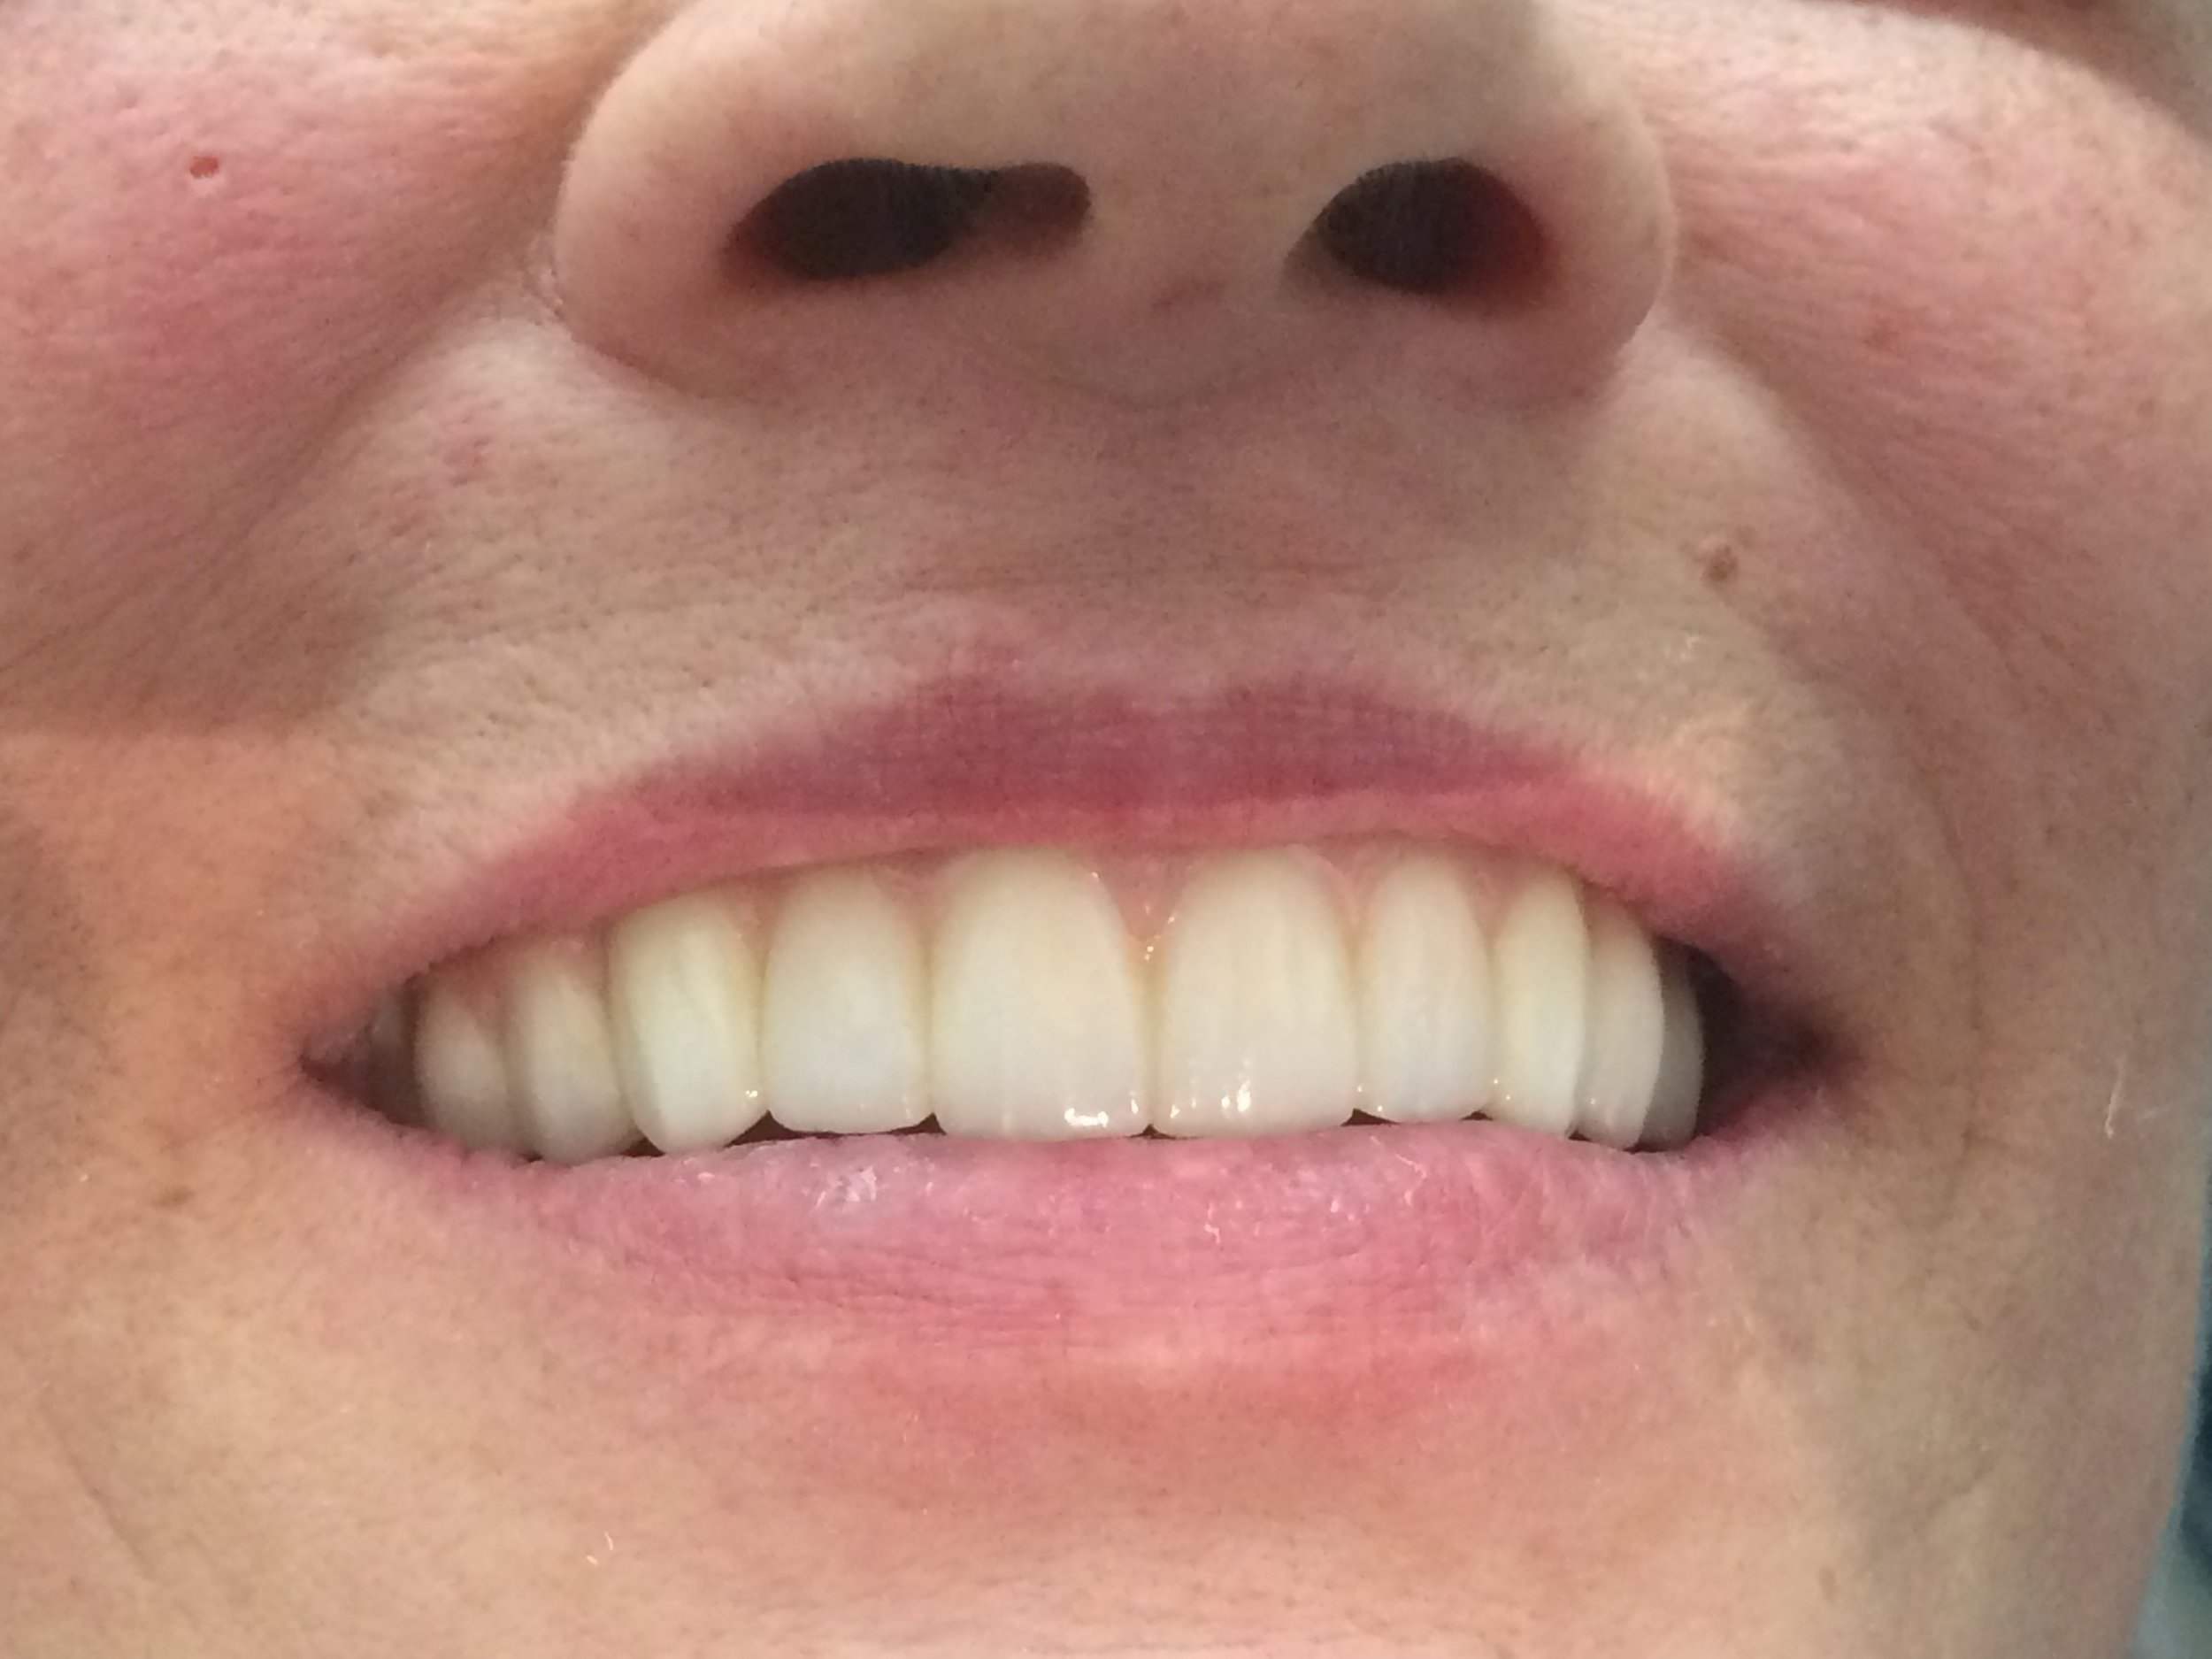 Fixed Upper Appliance with Dental Implants